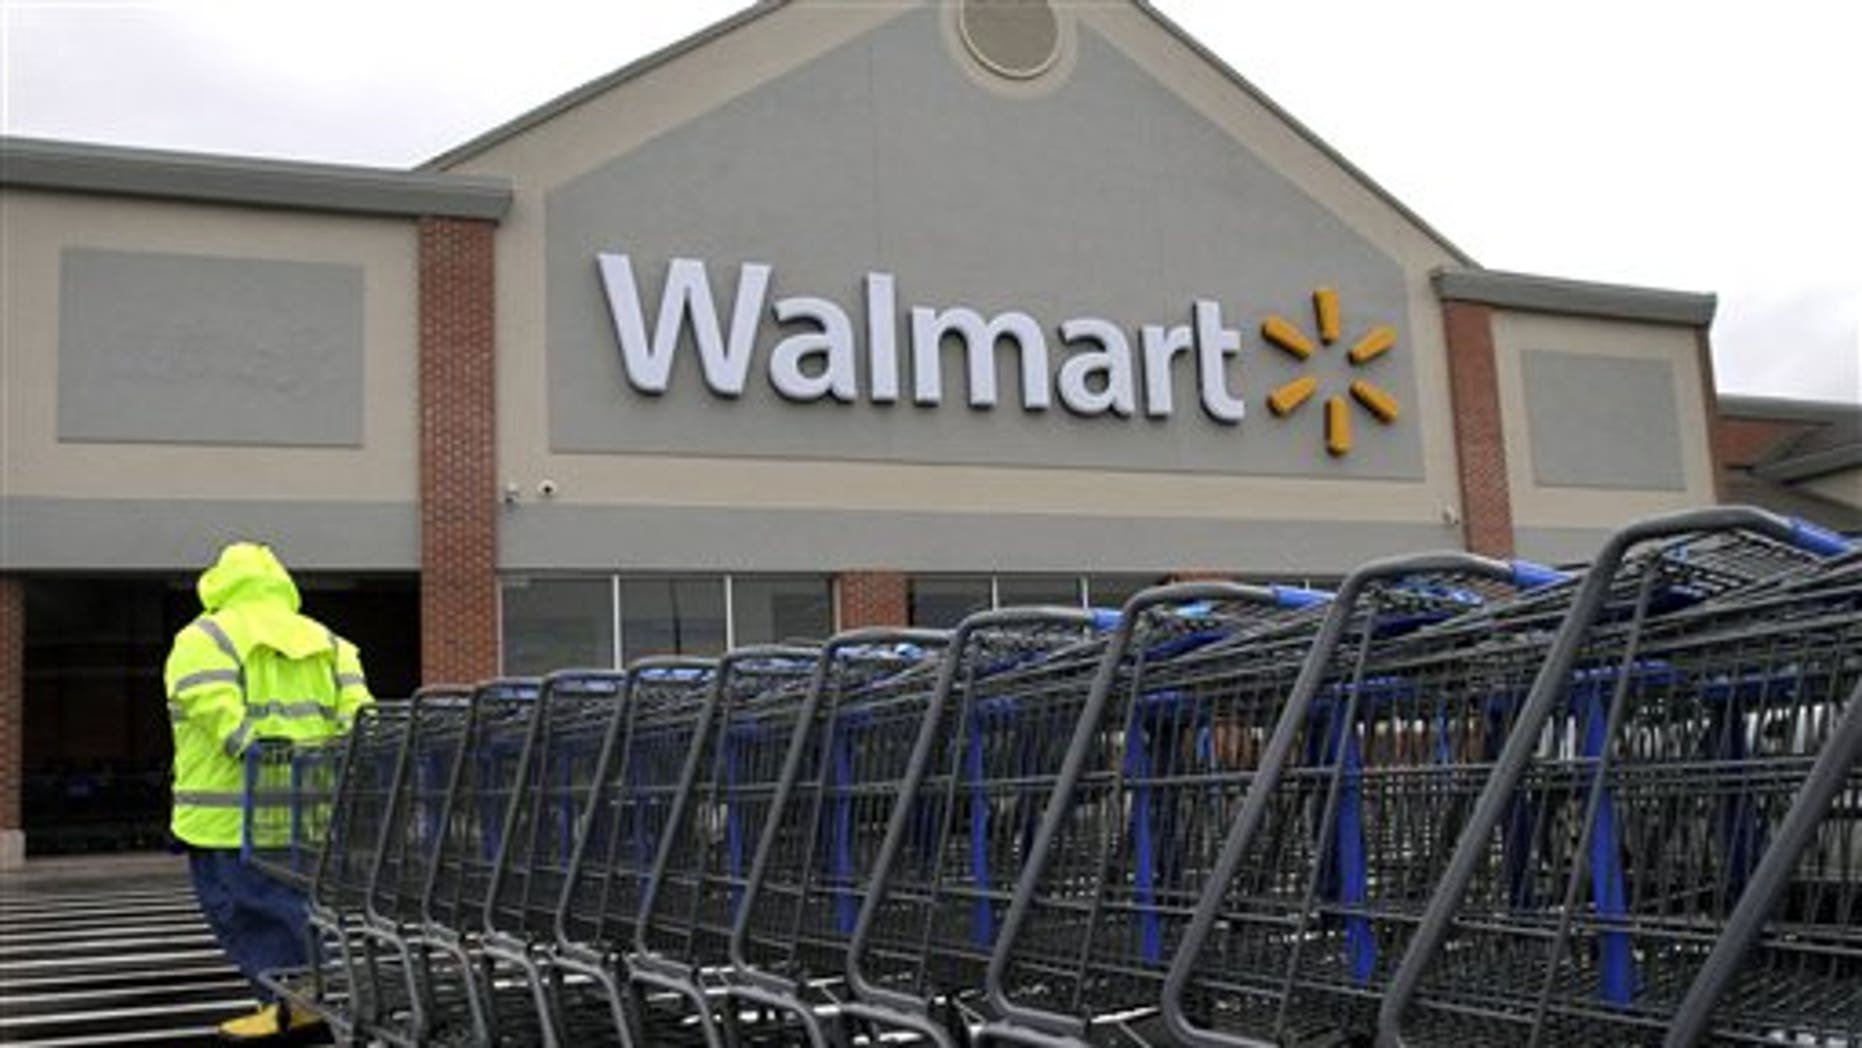 Nov. 13, 2012: A worker pulls a line of shopping carts toward a Walmart store in North Kingstown, R.I. Wal-Mart Stores Inc. reported a 9 percent increase in net income for the third quarter, but revenue for the world's largest retailer fell below Wall Street forecasts as its low-income shoppers continue to grapple with an uncertain economy.